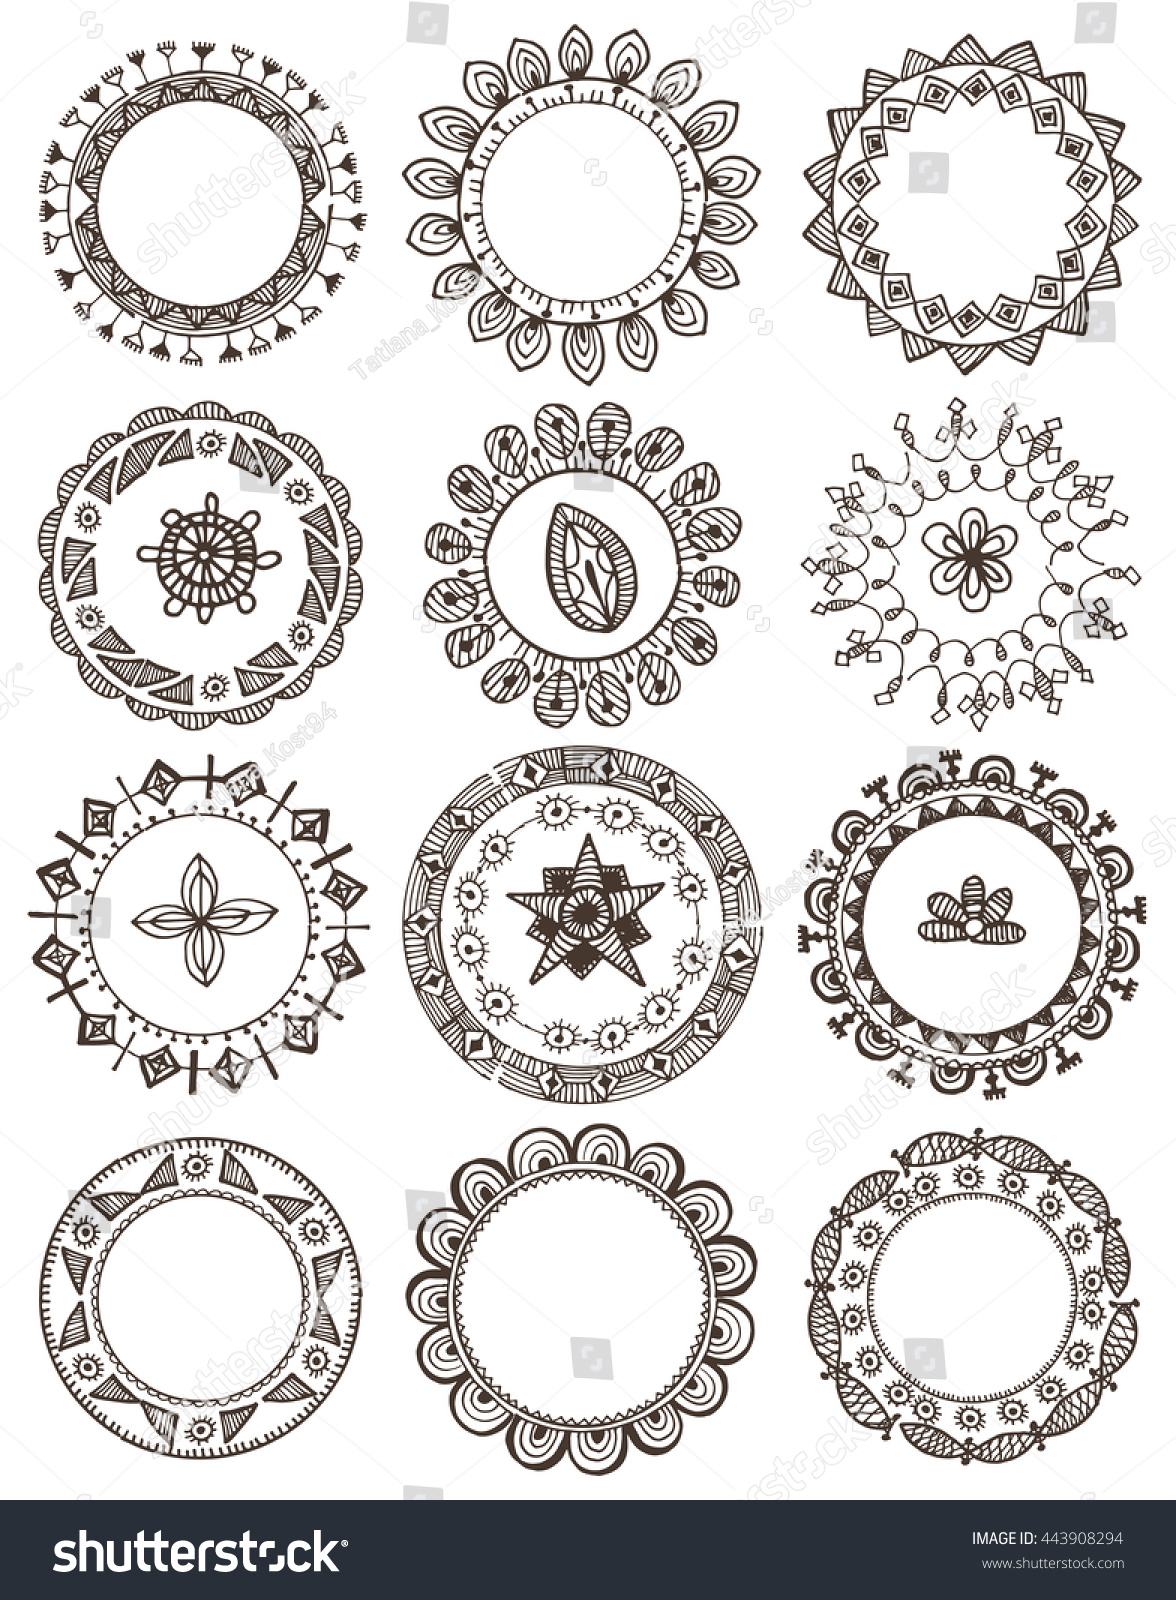 Mehndi Circle Vector : Indian mehndi pattern circle wreaths framesvector stock